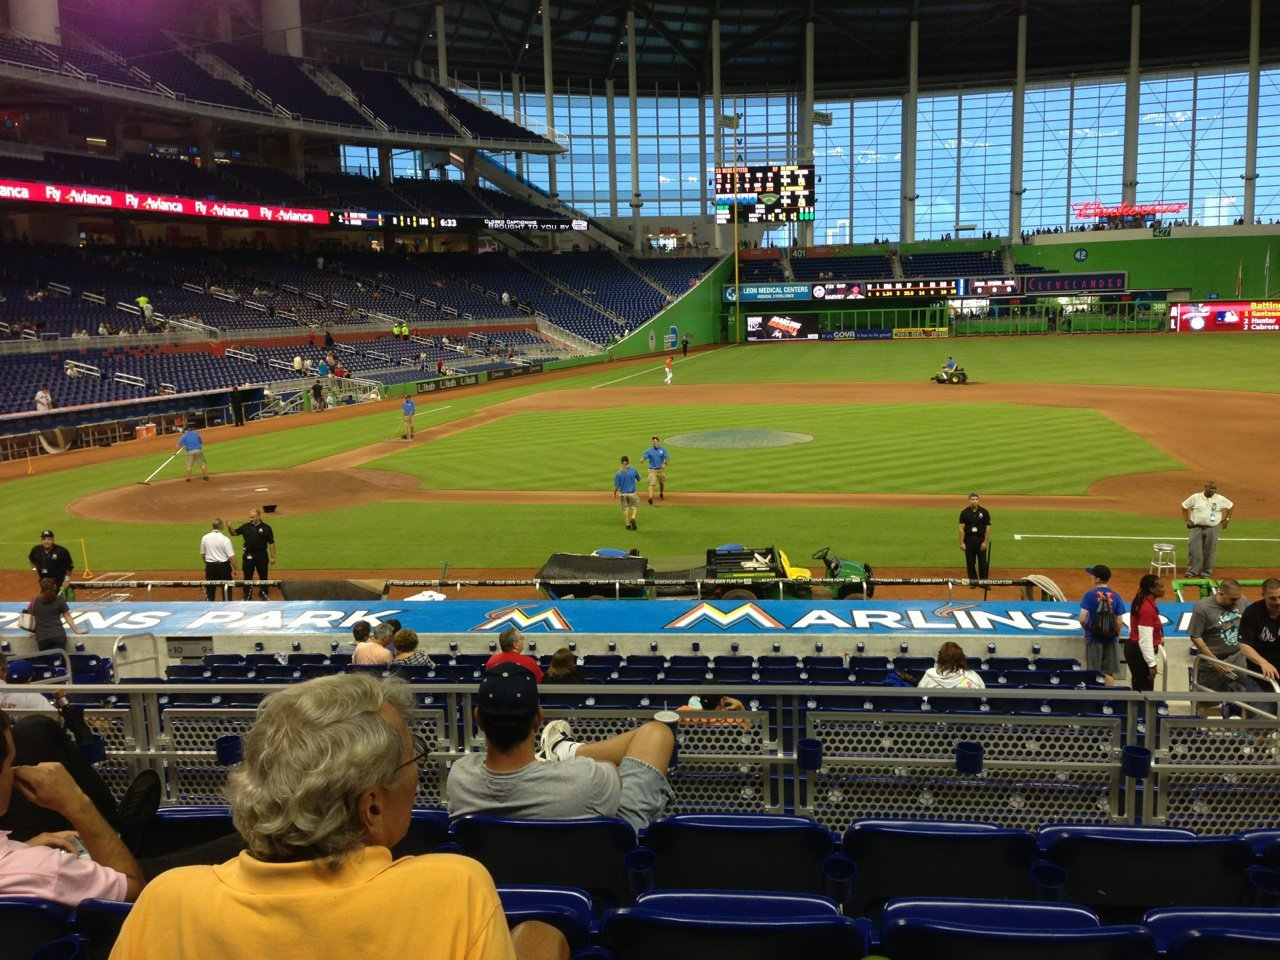 Marlins Park Great Views of the Field